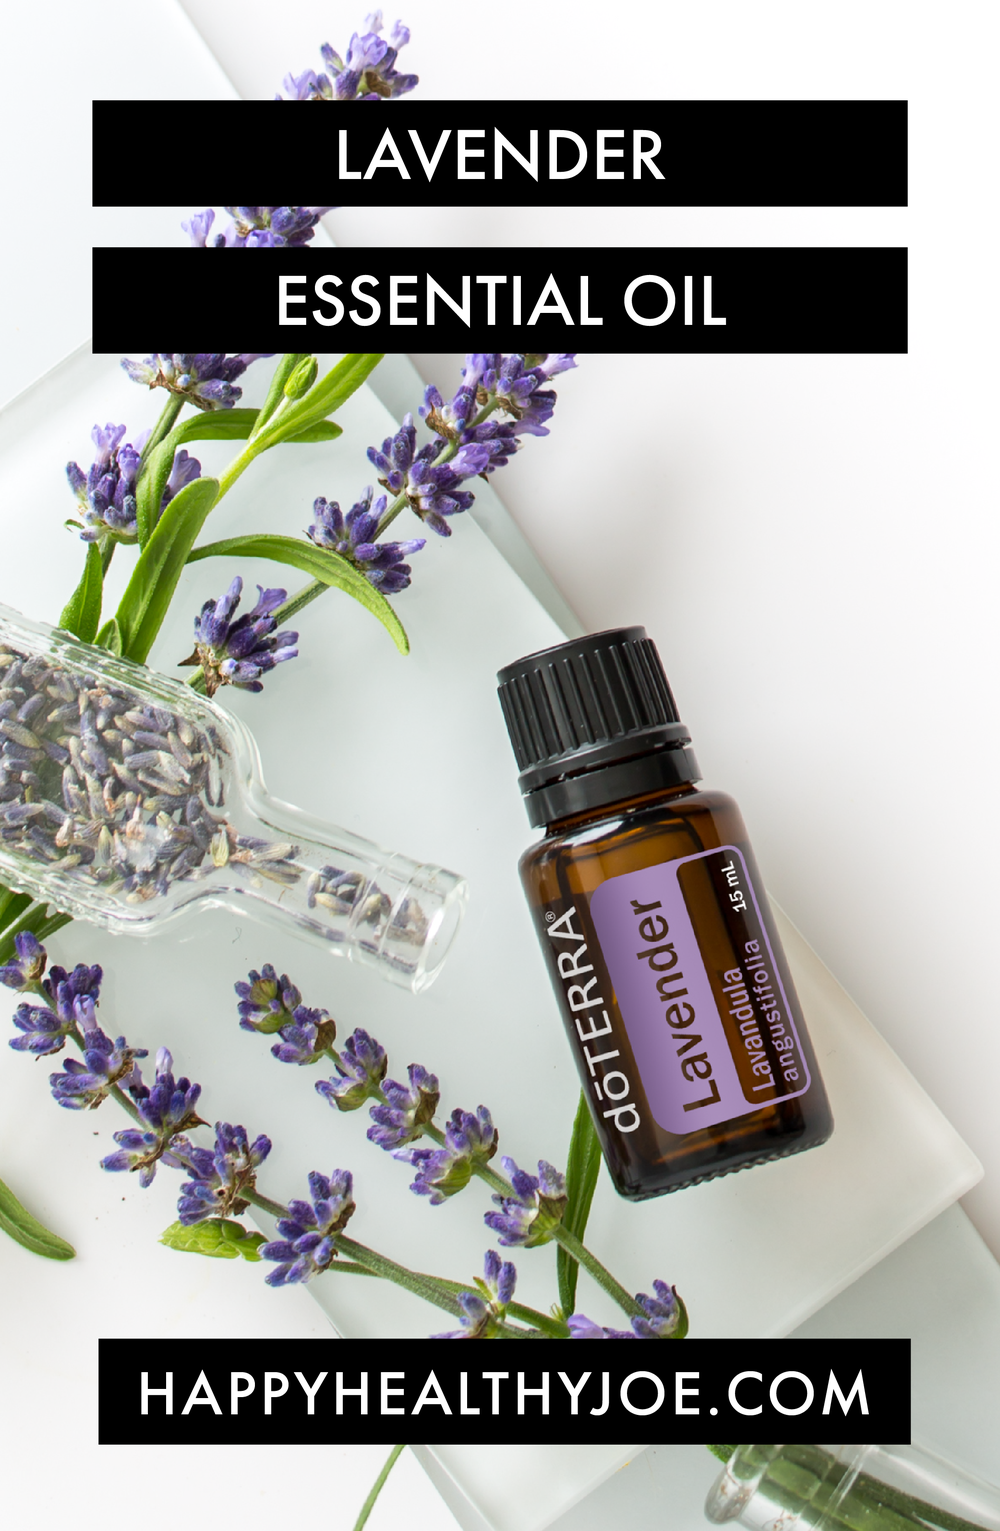 Top doTERRA Essential Oils For Fitness - Lavender Essential Oil